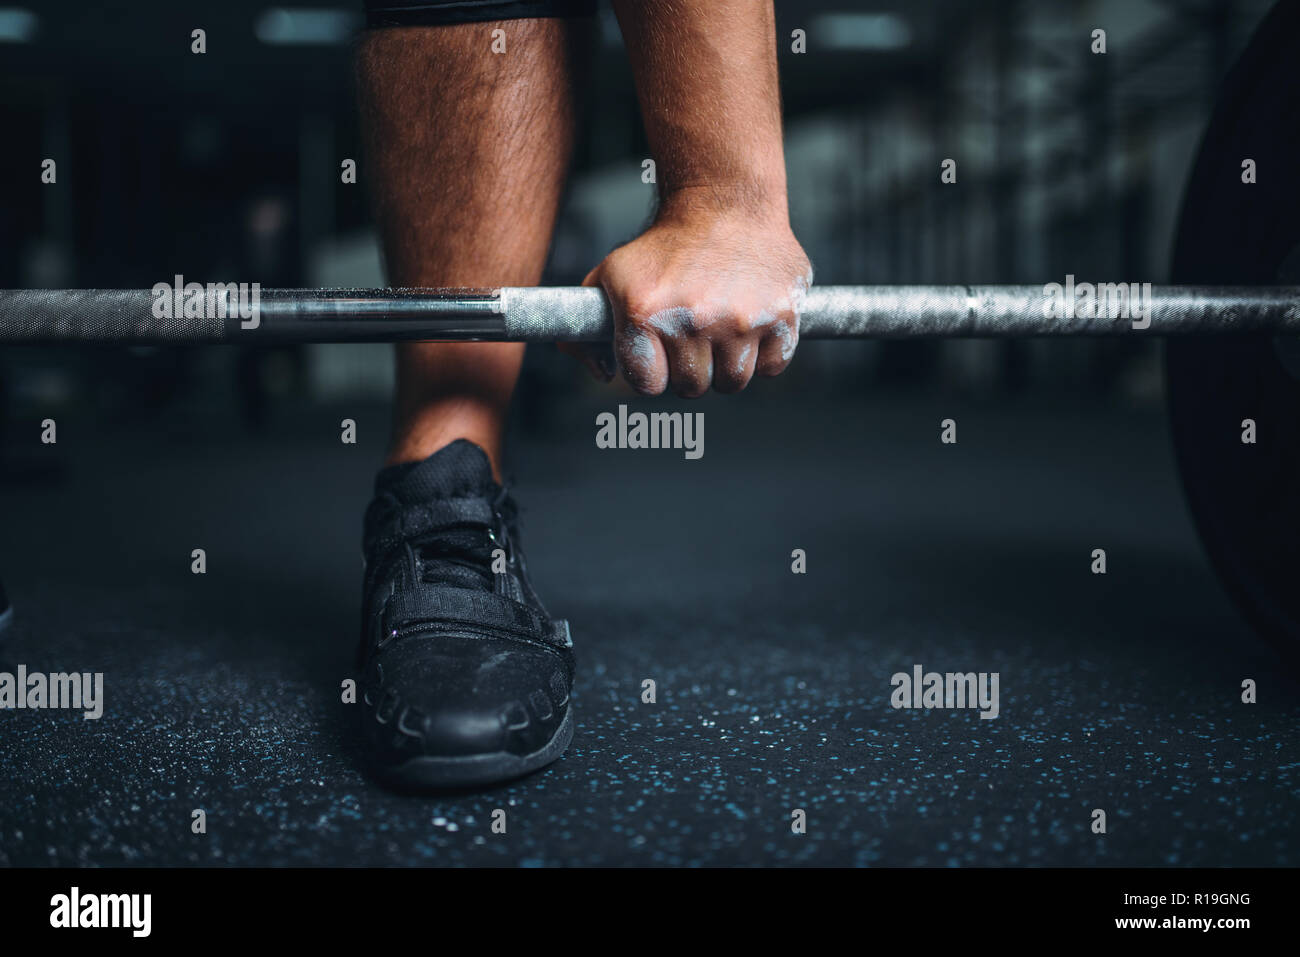 Male powerlifter prepares for deadlift a barbell in gym